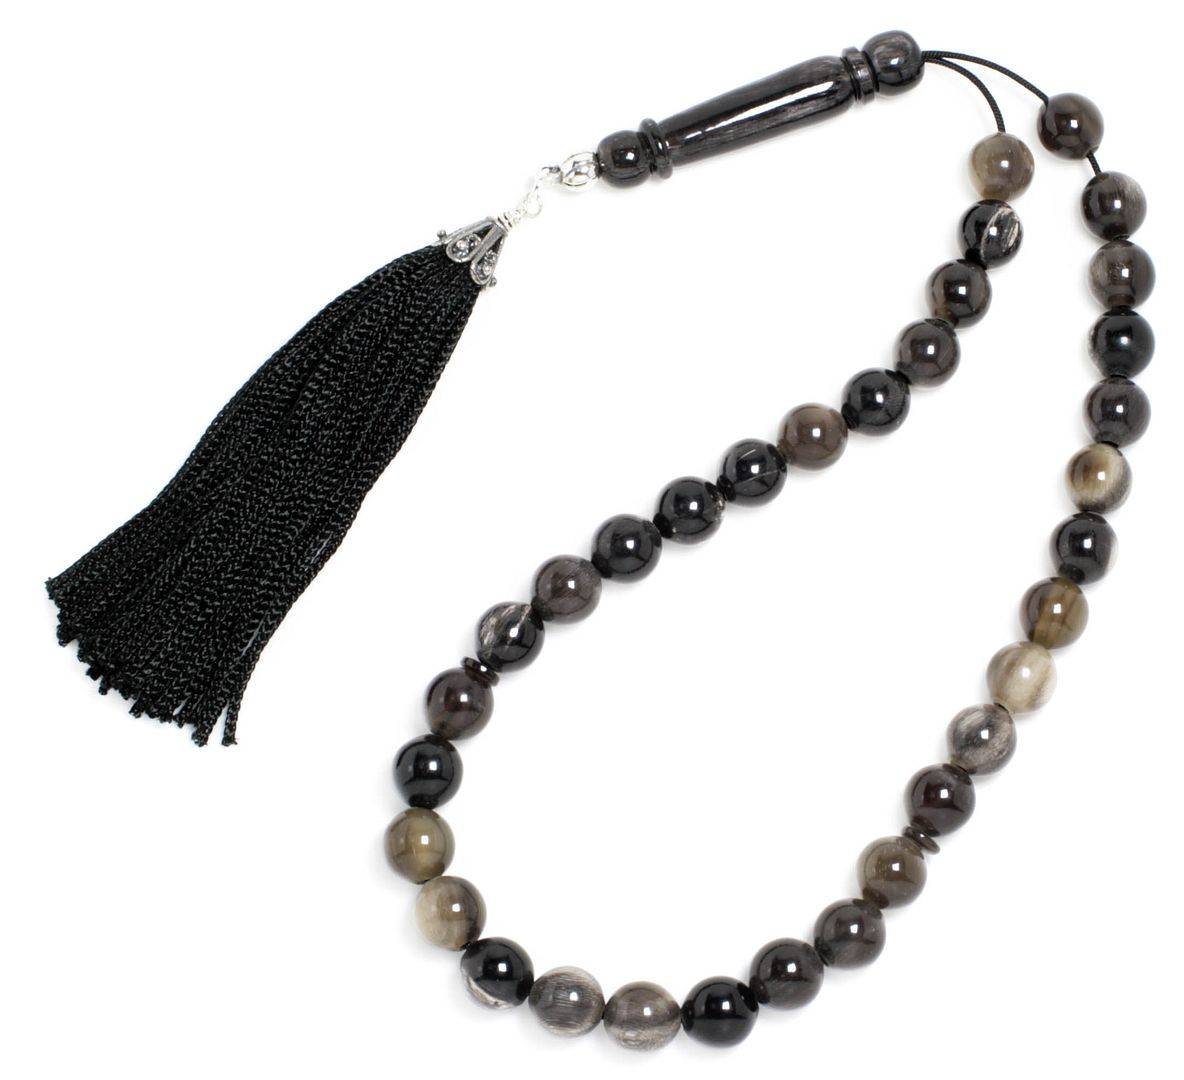 Prayer Beads-Tasbih-Masbaha ~ Worry Beads - Bull Horn with Tassel - Round